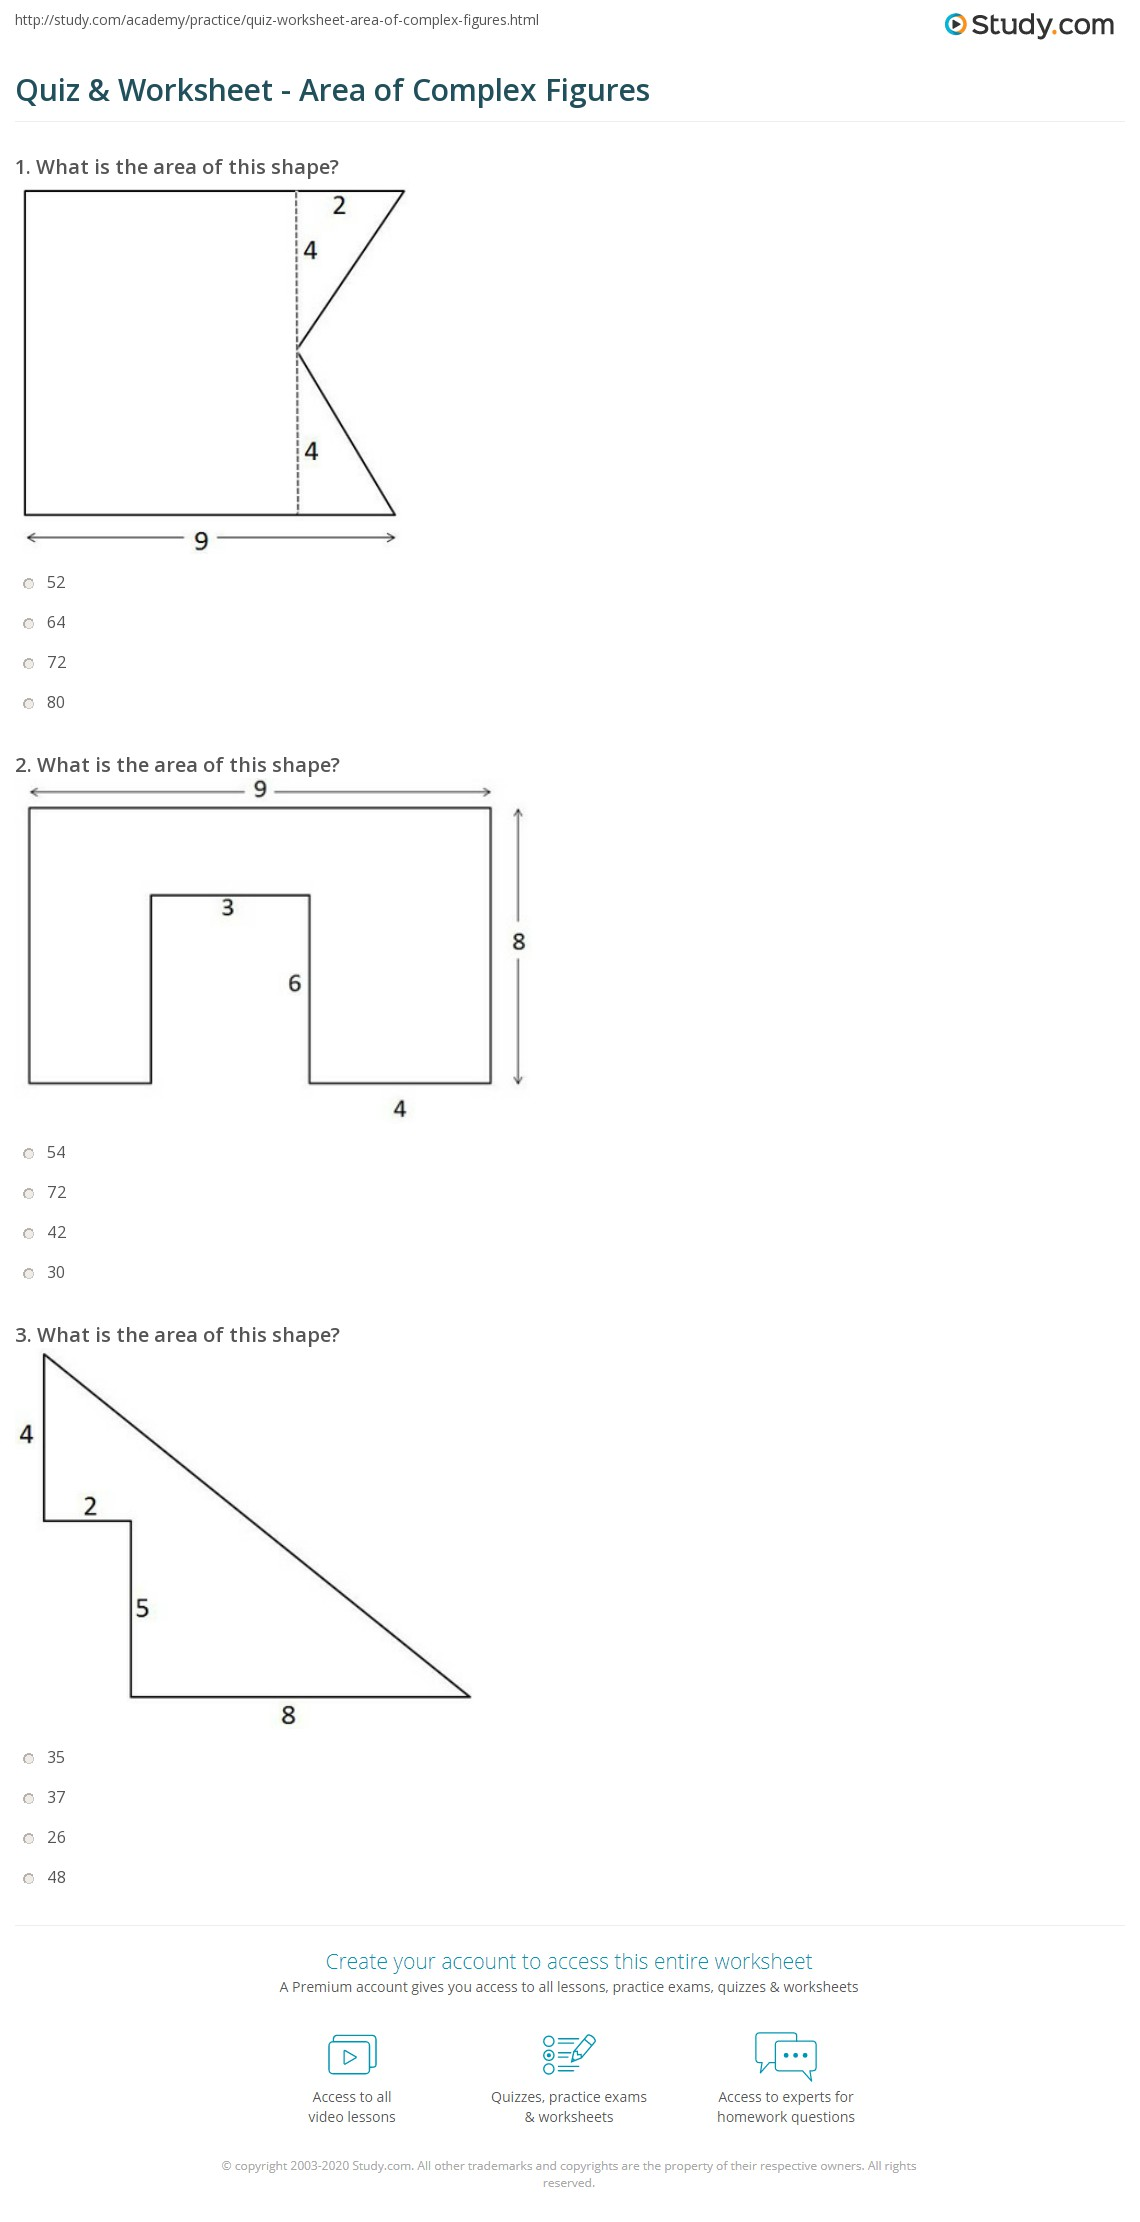 Quiz Worksheet Area Of Complex Figures Study